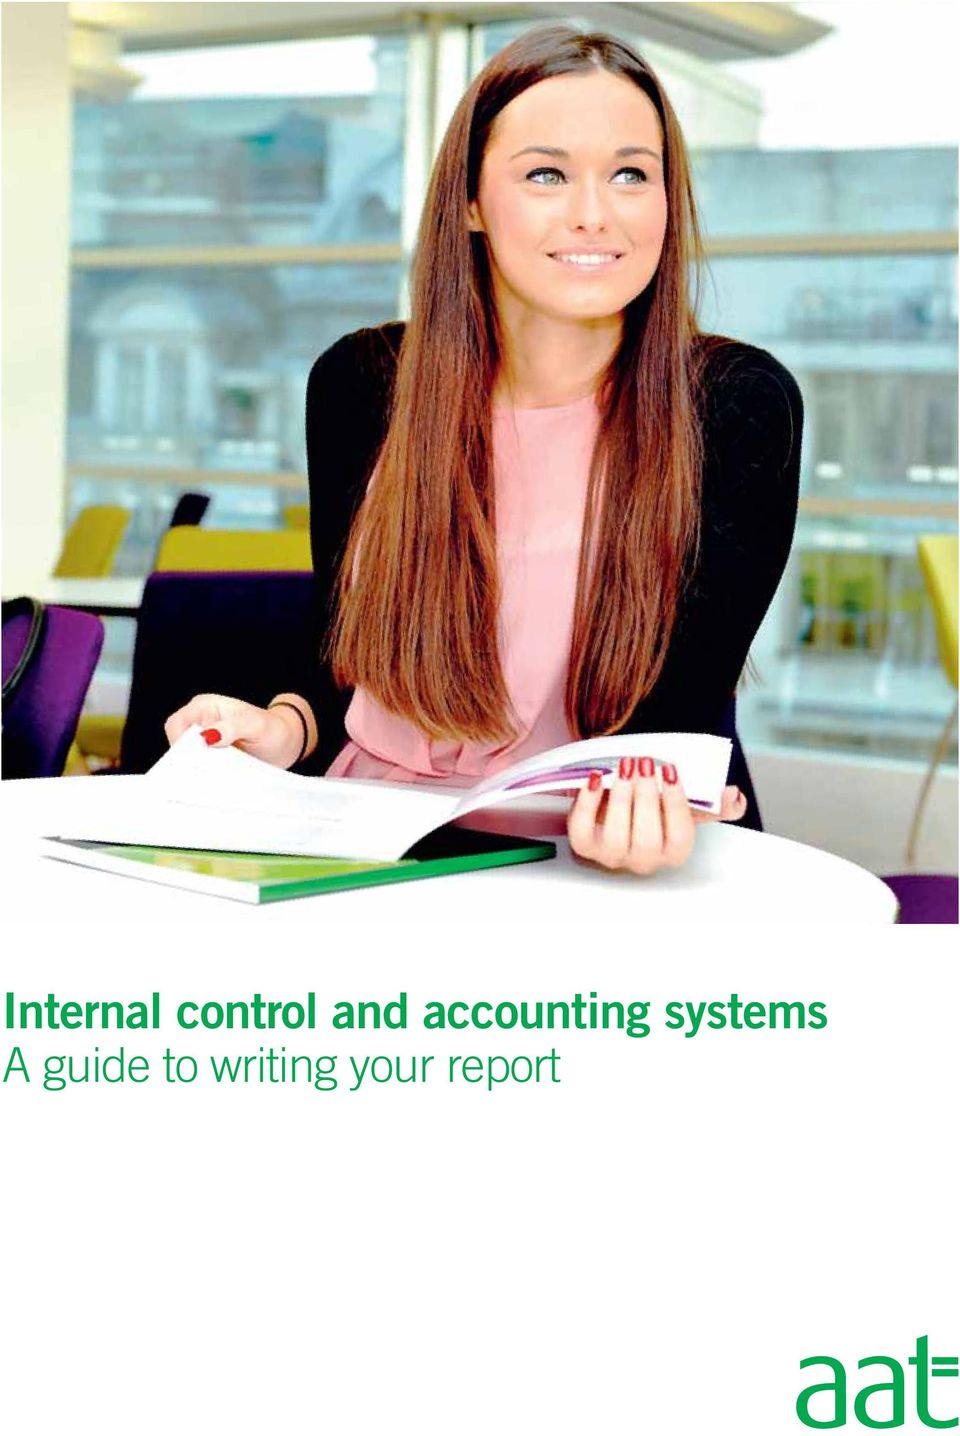 internal control and accounting systems Start studying chapter 7 - control and accounting information systems learn vocabulary, terms, and more with flashcards, games, and other study tools.